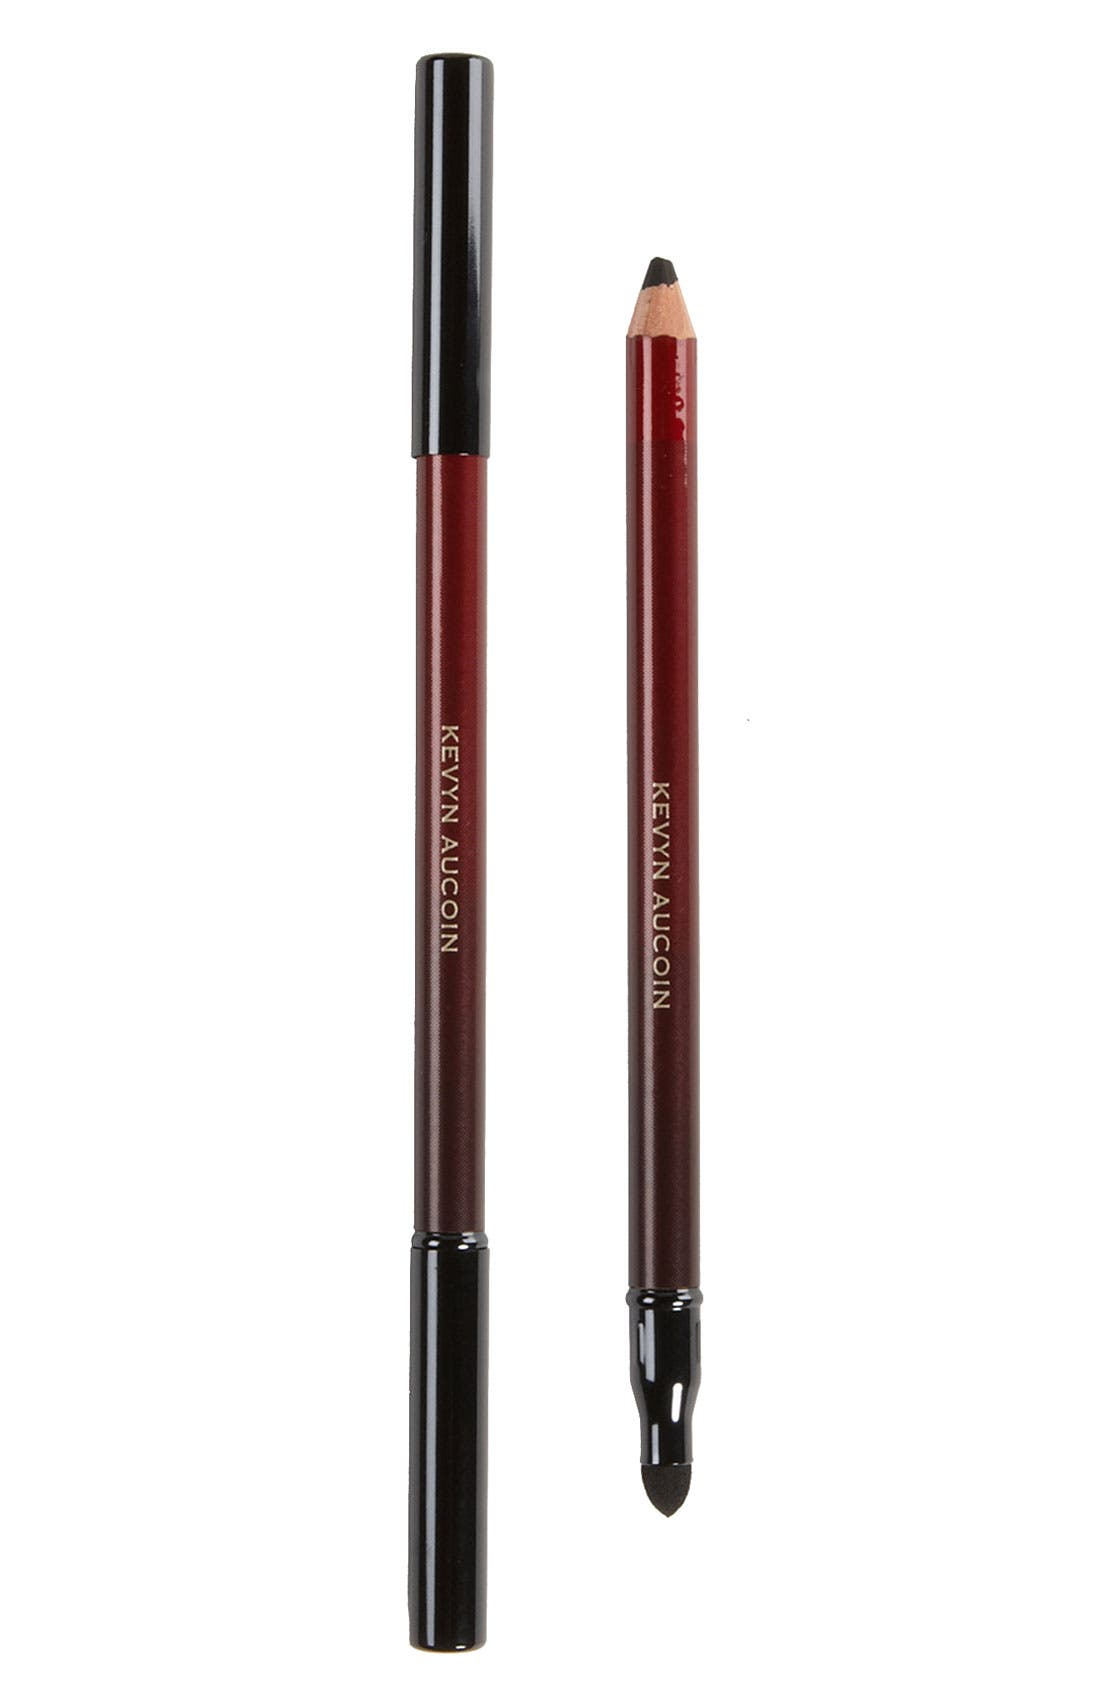 SPACE.NK.apothecary Kevyn Aucoin Beauty The Eye Pencil Primatif Pencil Eyeliner